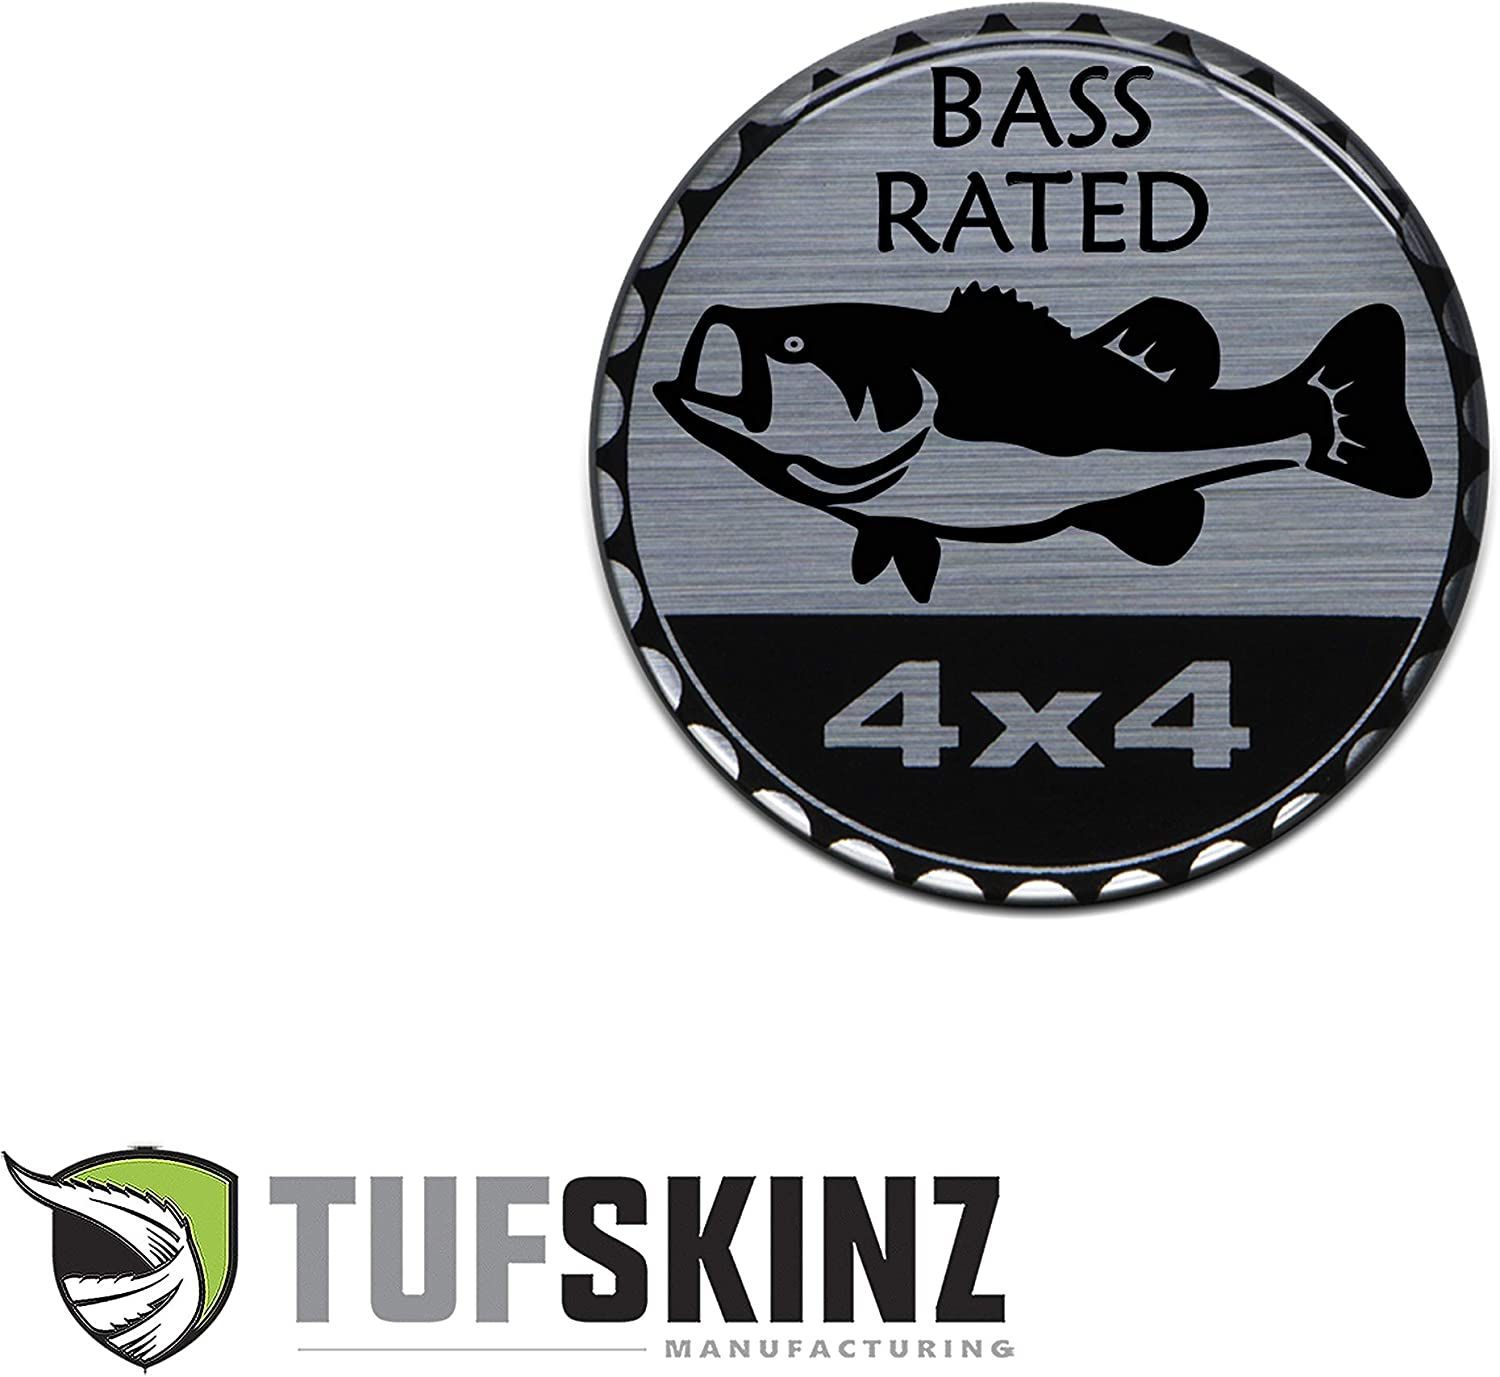 Compatible with Jeep 1 Piece Animals, Bass Rated Rated Badge TufSkinz Brushed Silver